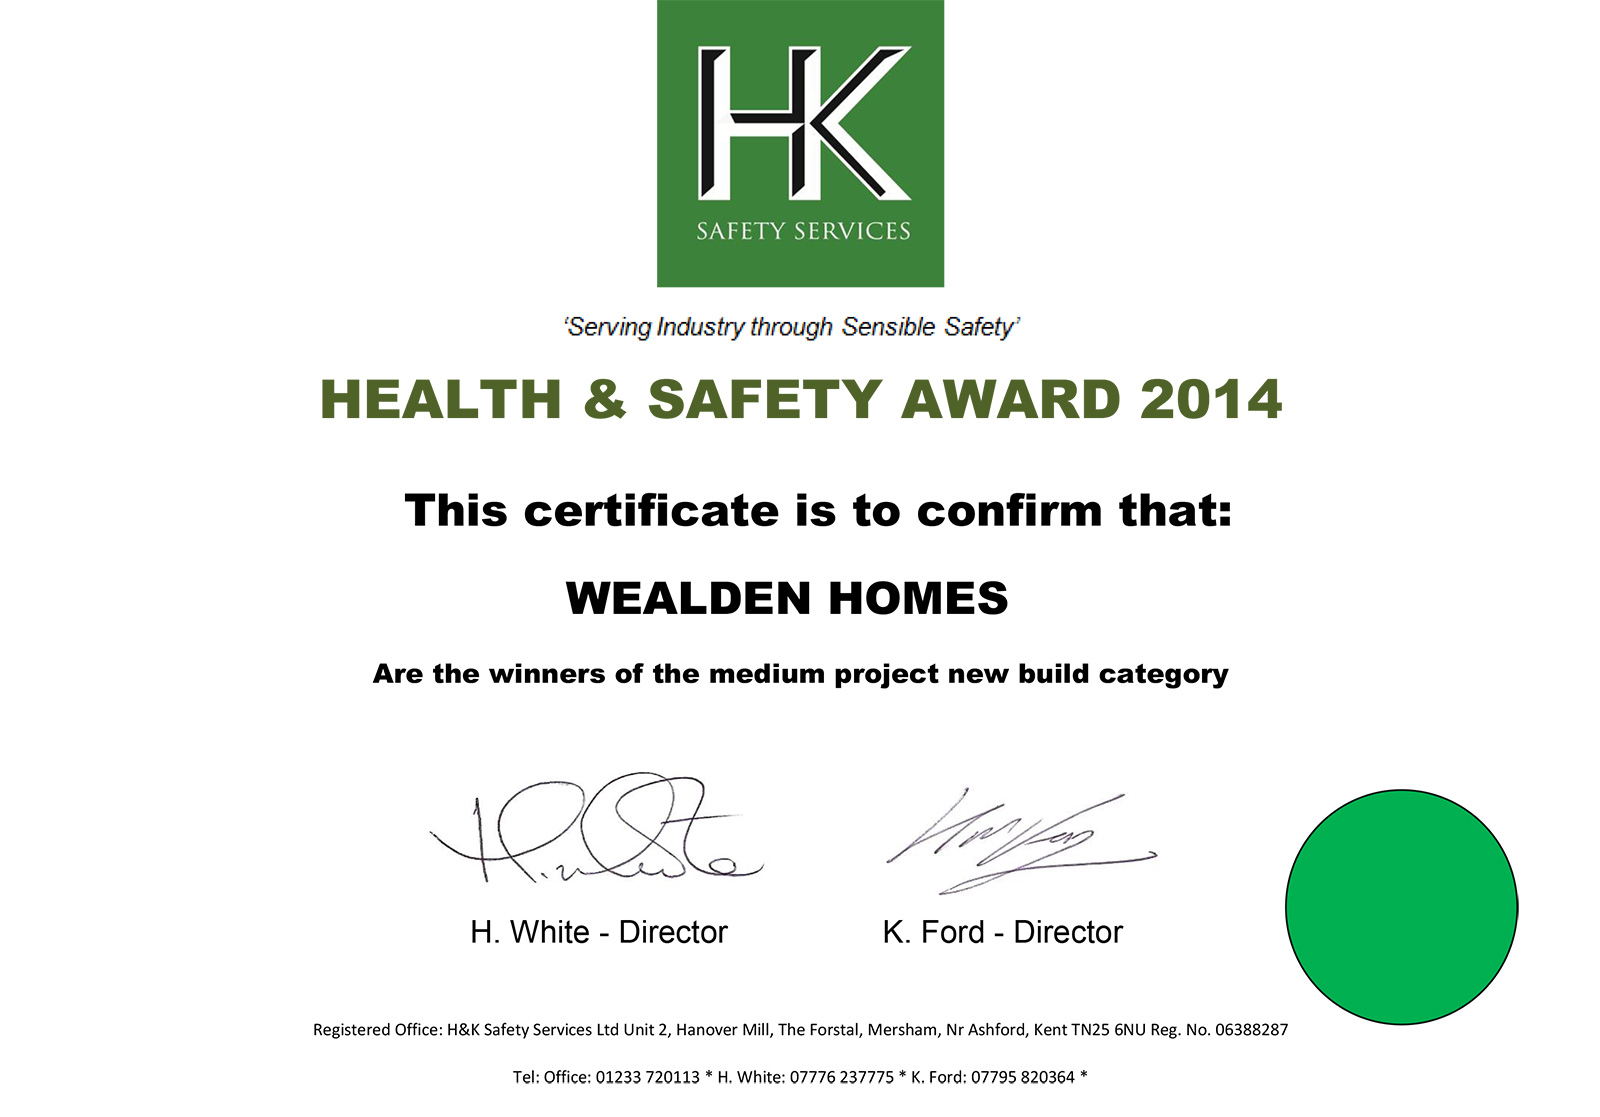 Health & Safety award